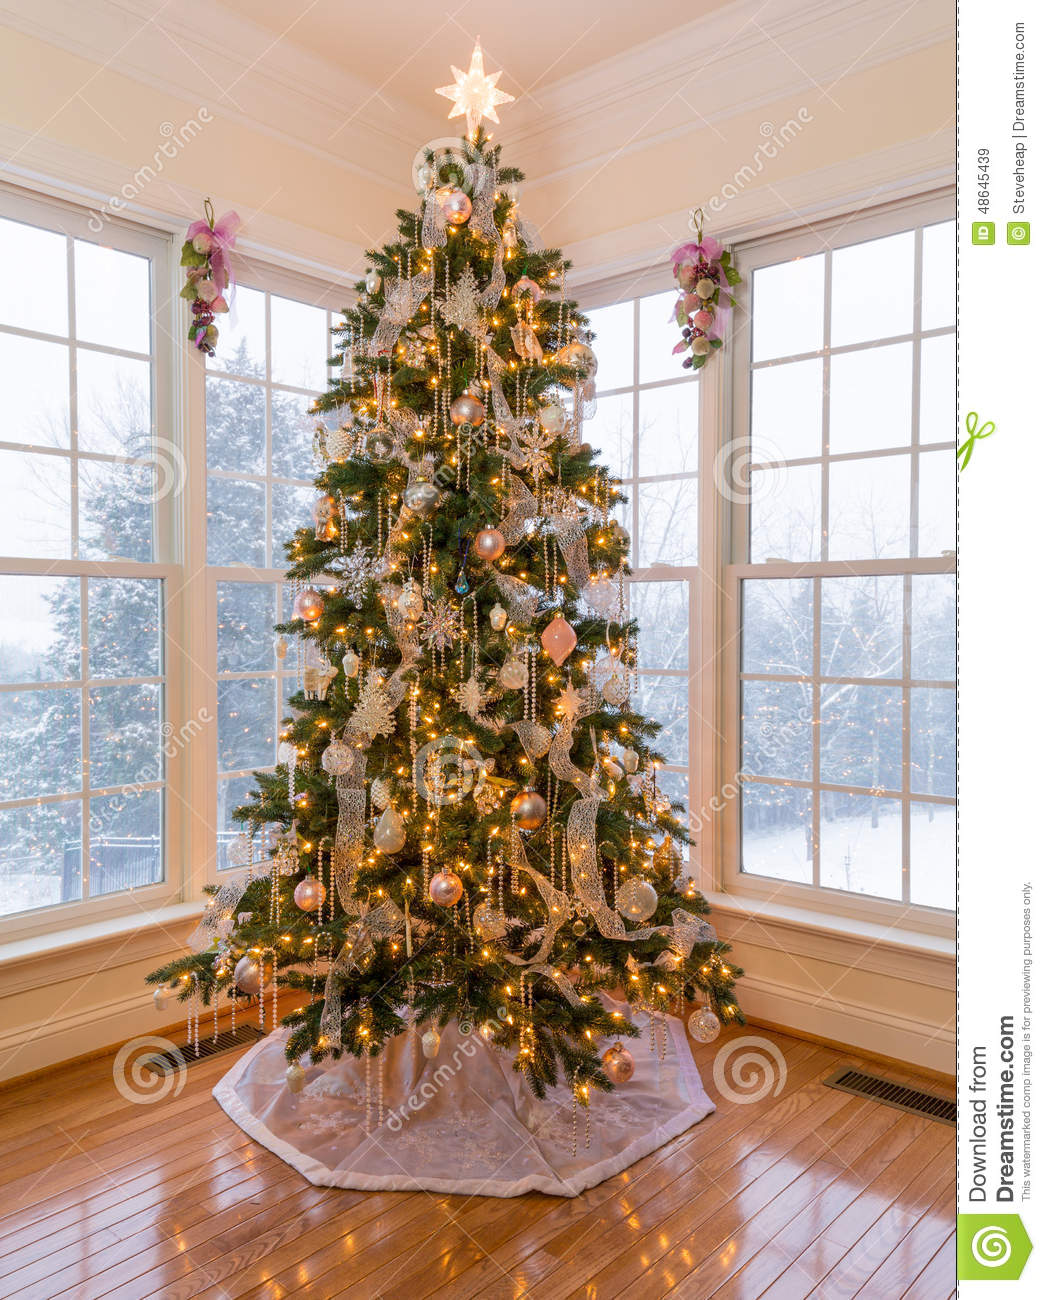 Beautiful Christmas Tree Pictures: Beautiful Xmas Tree With Snow Outside Stock Image